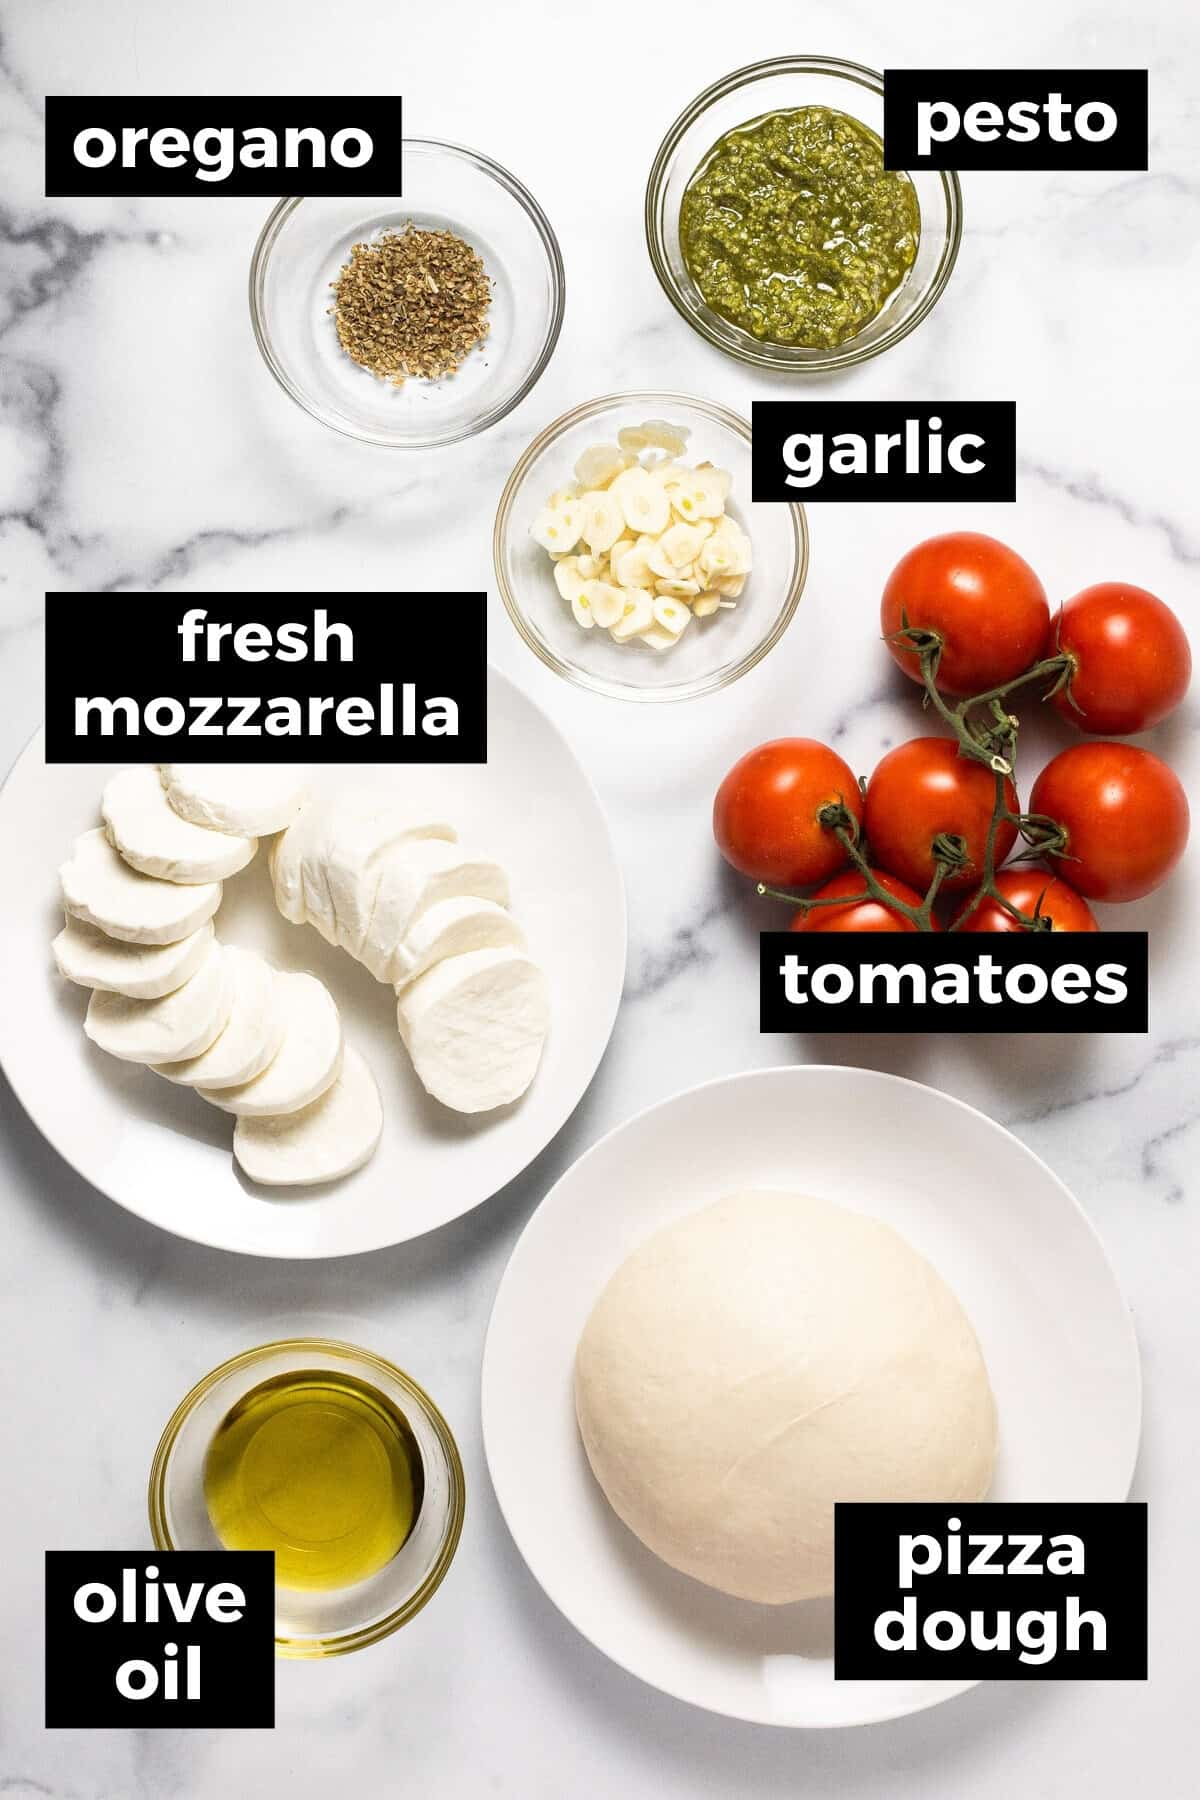 White marble counter top with ingredients to make margherita flatbread